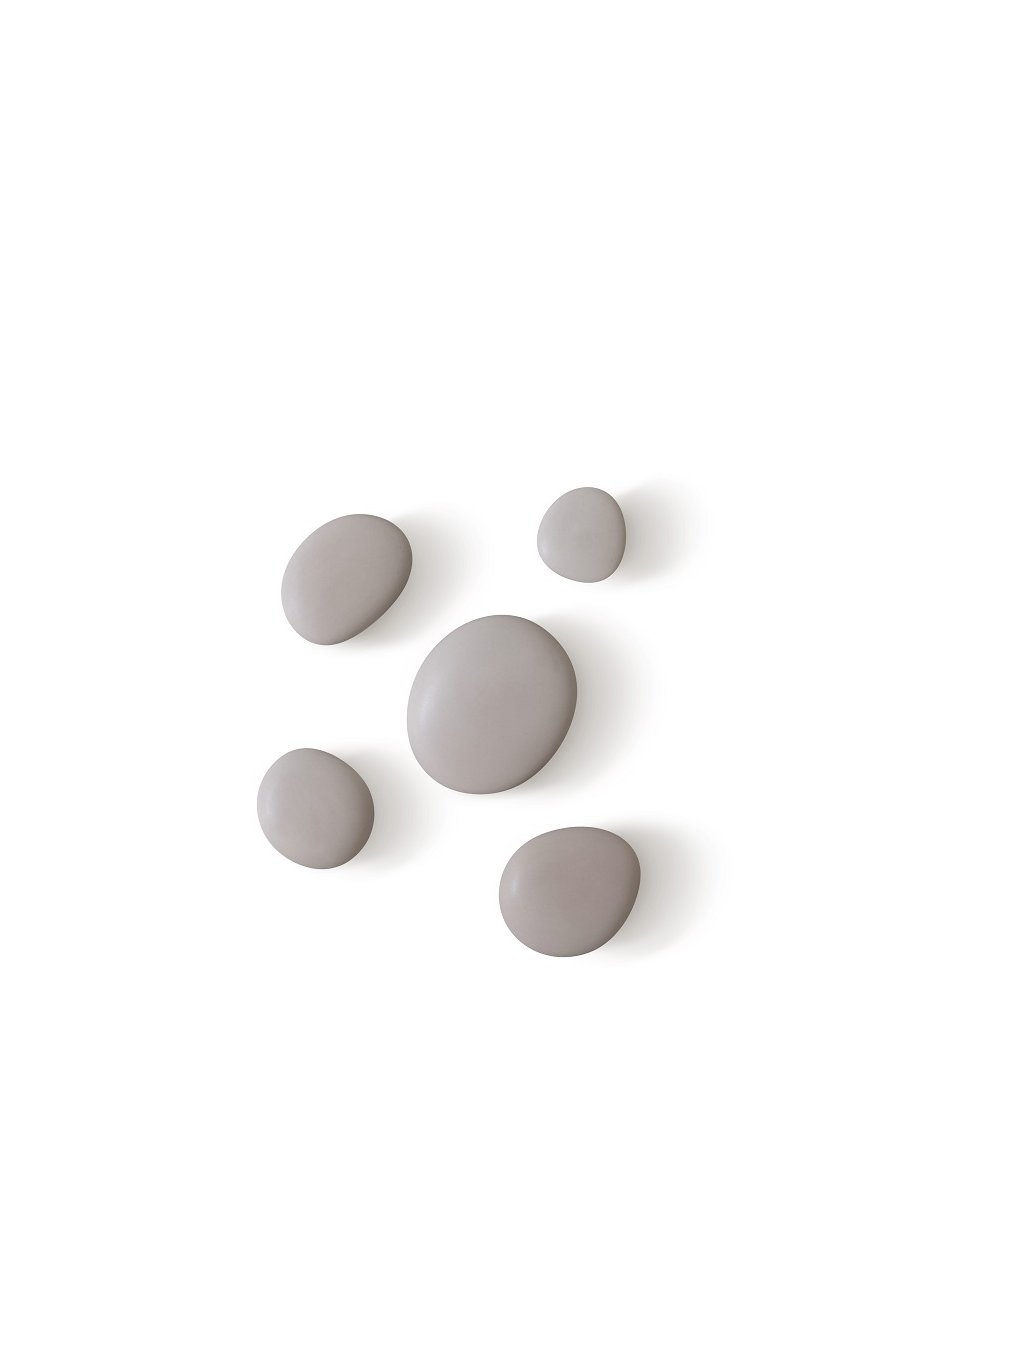 MAOMI I HOOKS I Set of 5 stone grey I free (1)